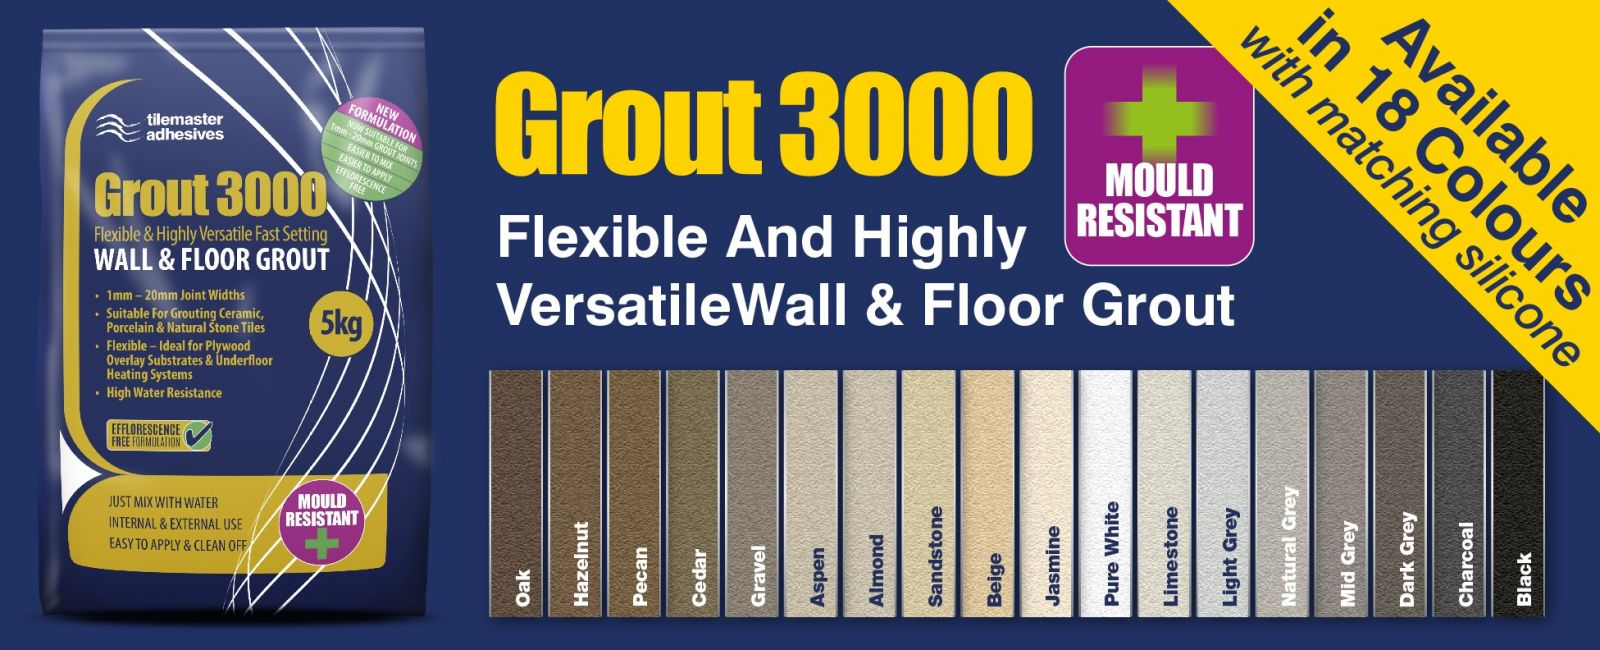 grout 3000 colours